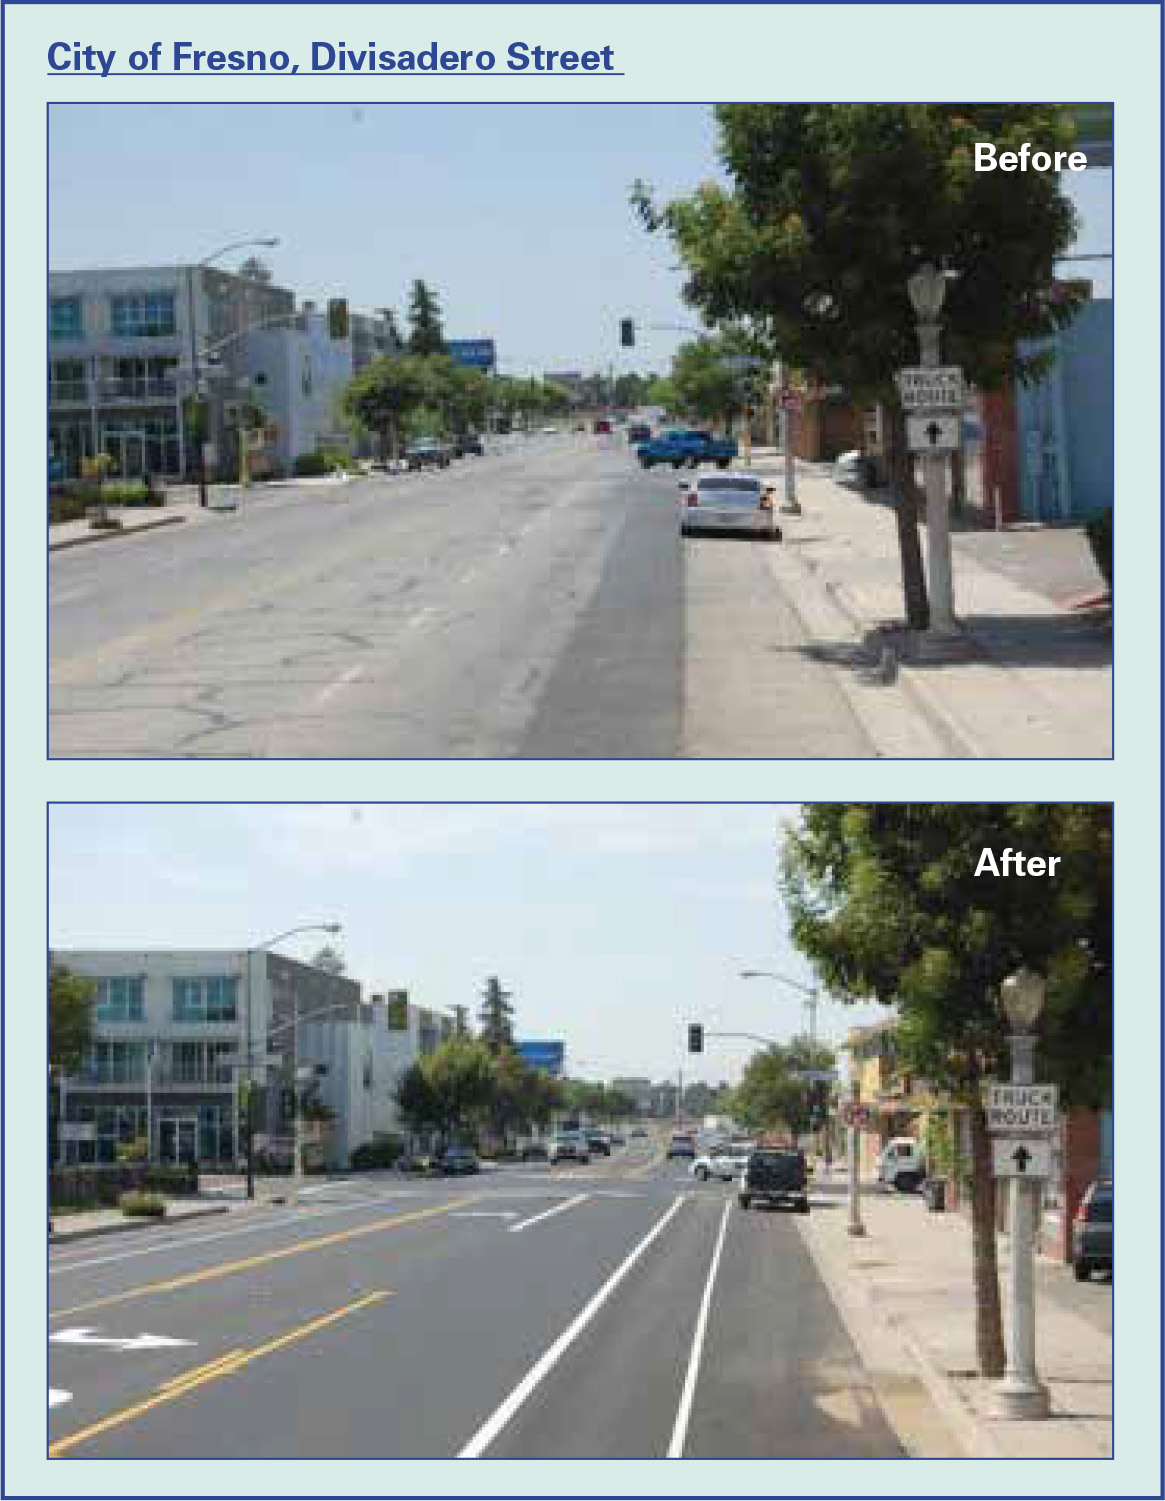 Figure 1: City of Fresno, Divisadero Street